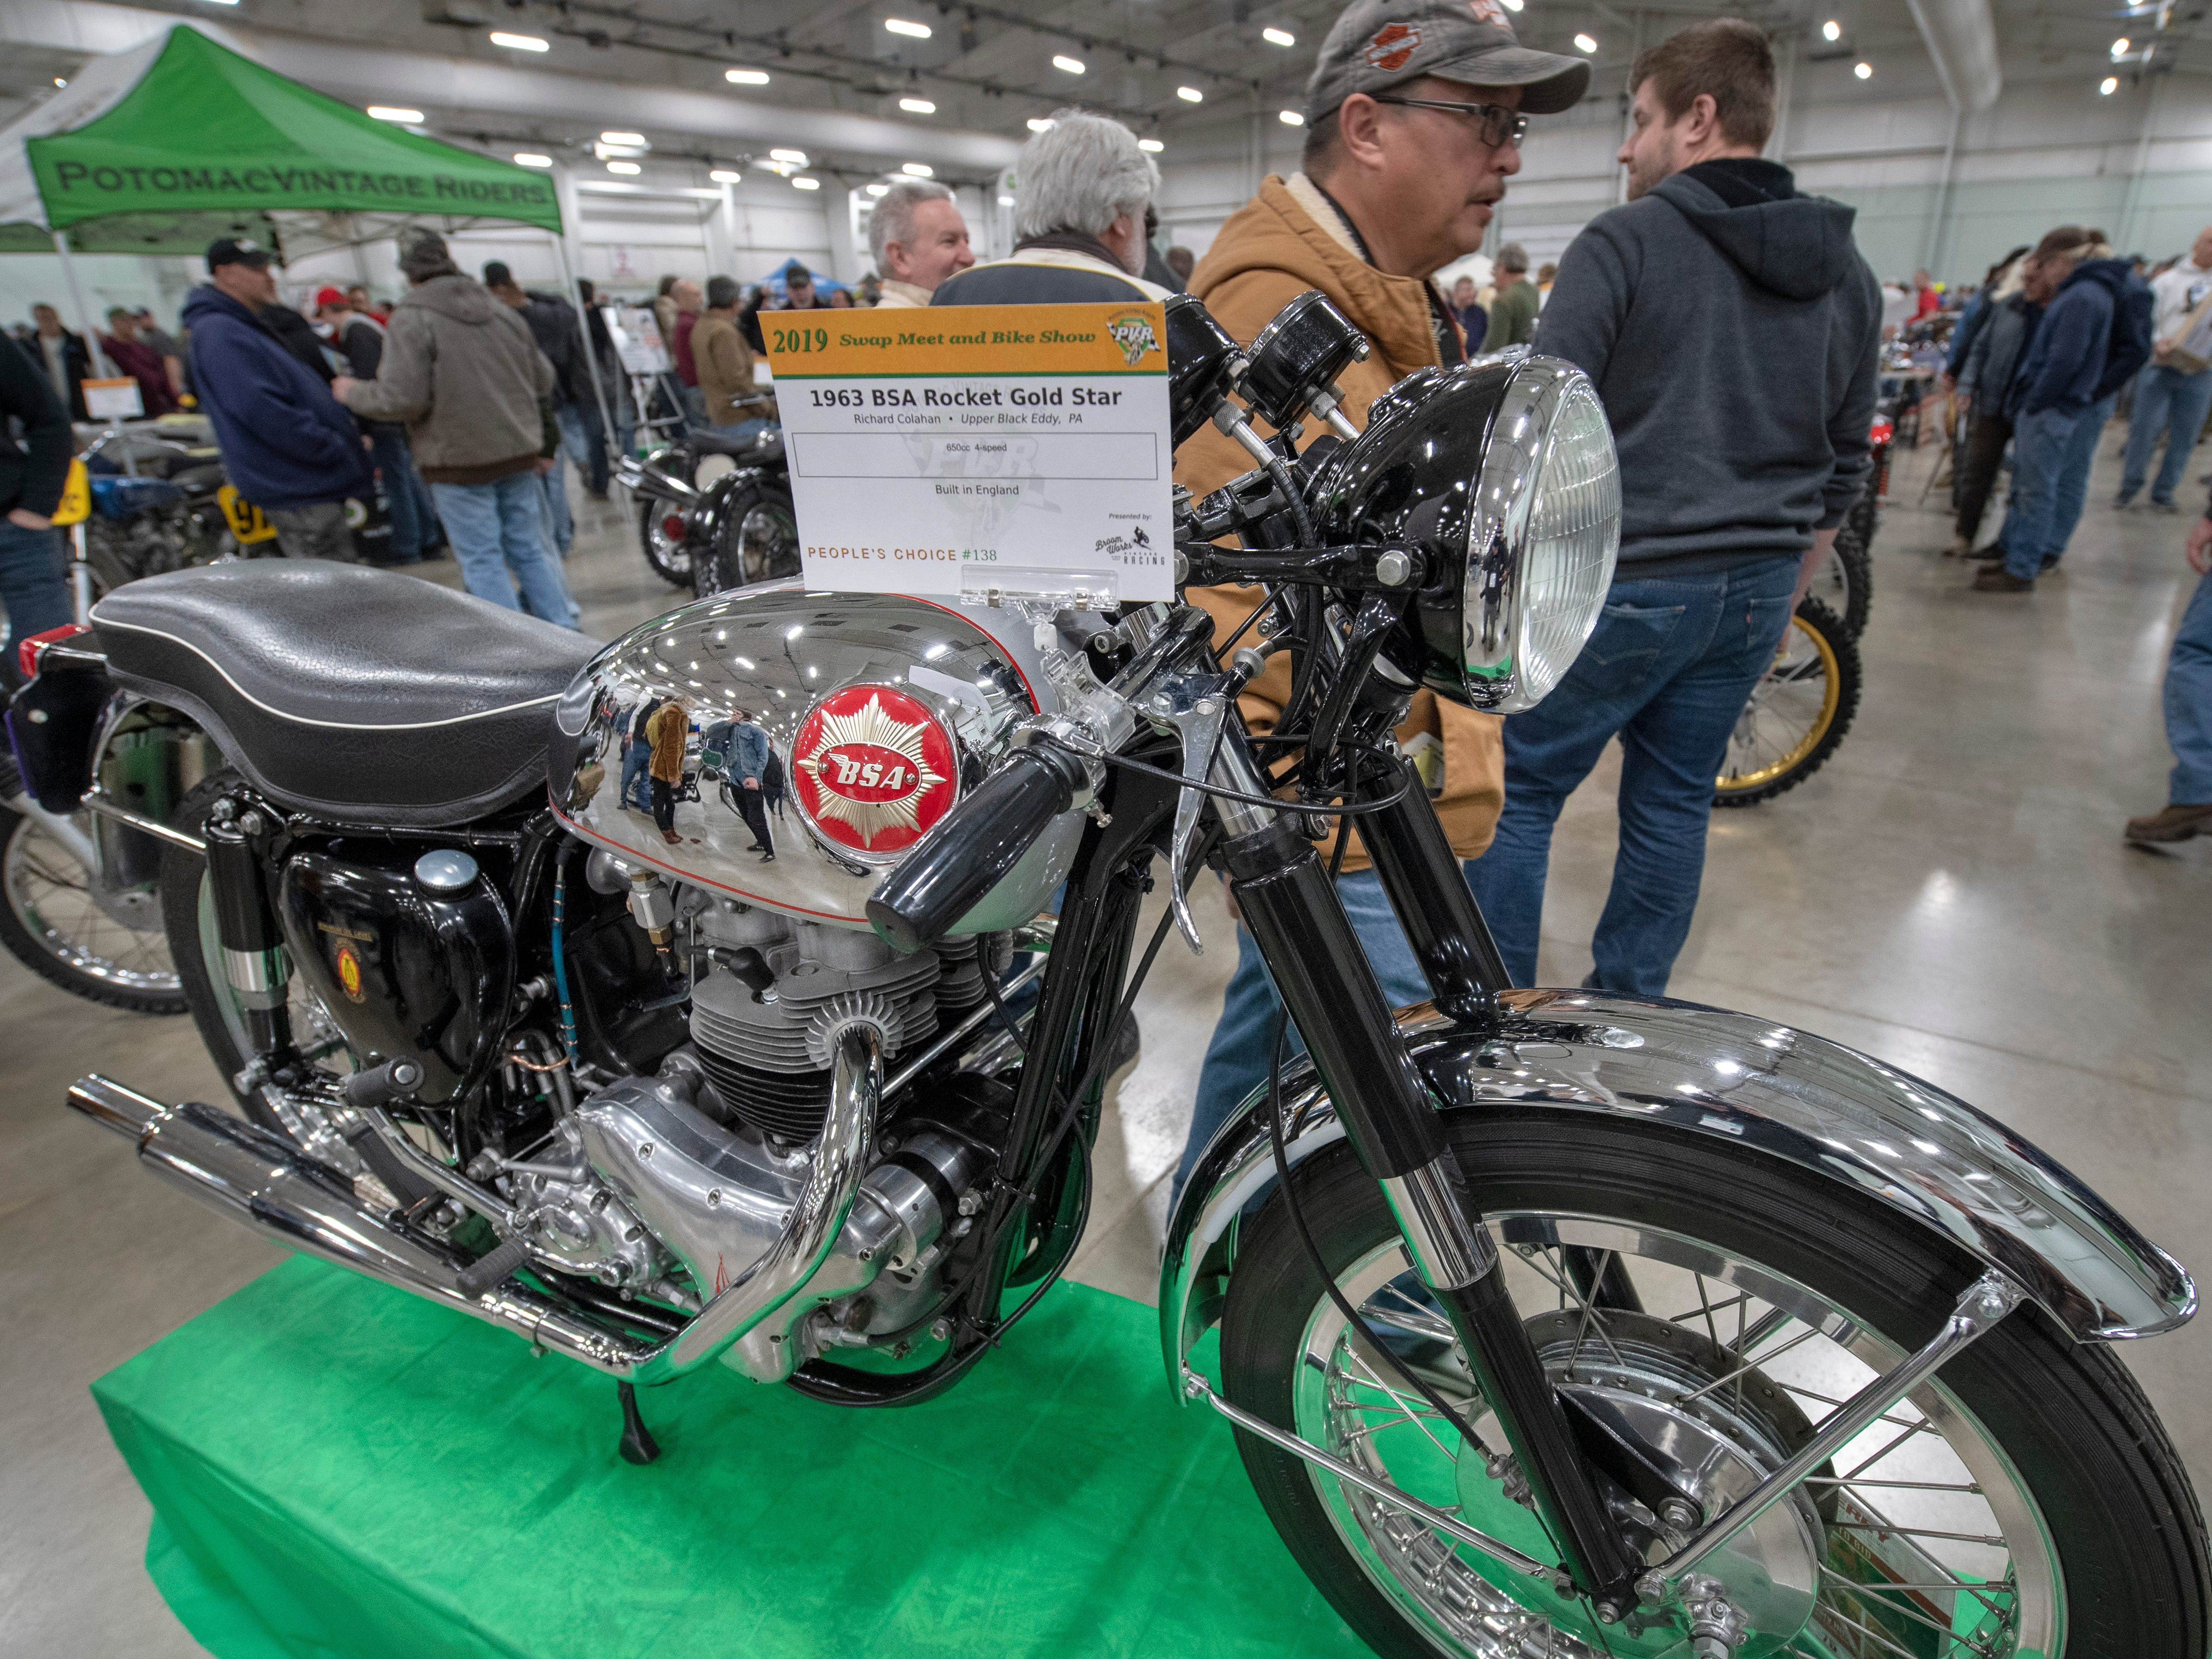 A 1963 BSA Rocket Gold Start on display during The Potomac Vintage Riders' York Swap Meet Sunday January 27, 2019 at the York Expo Center.